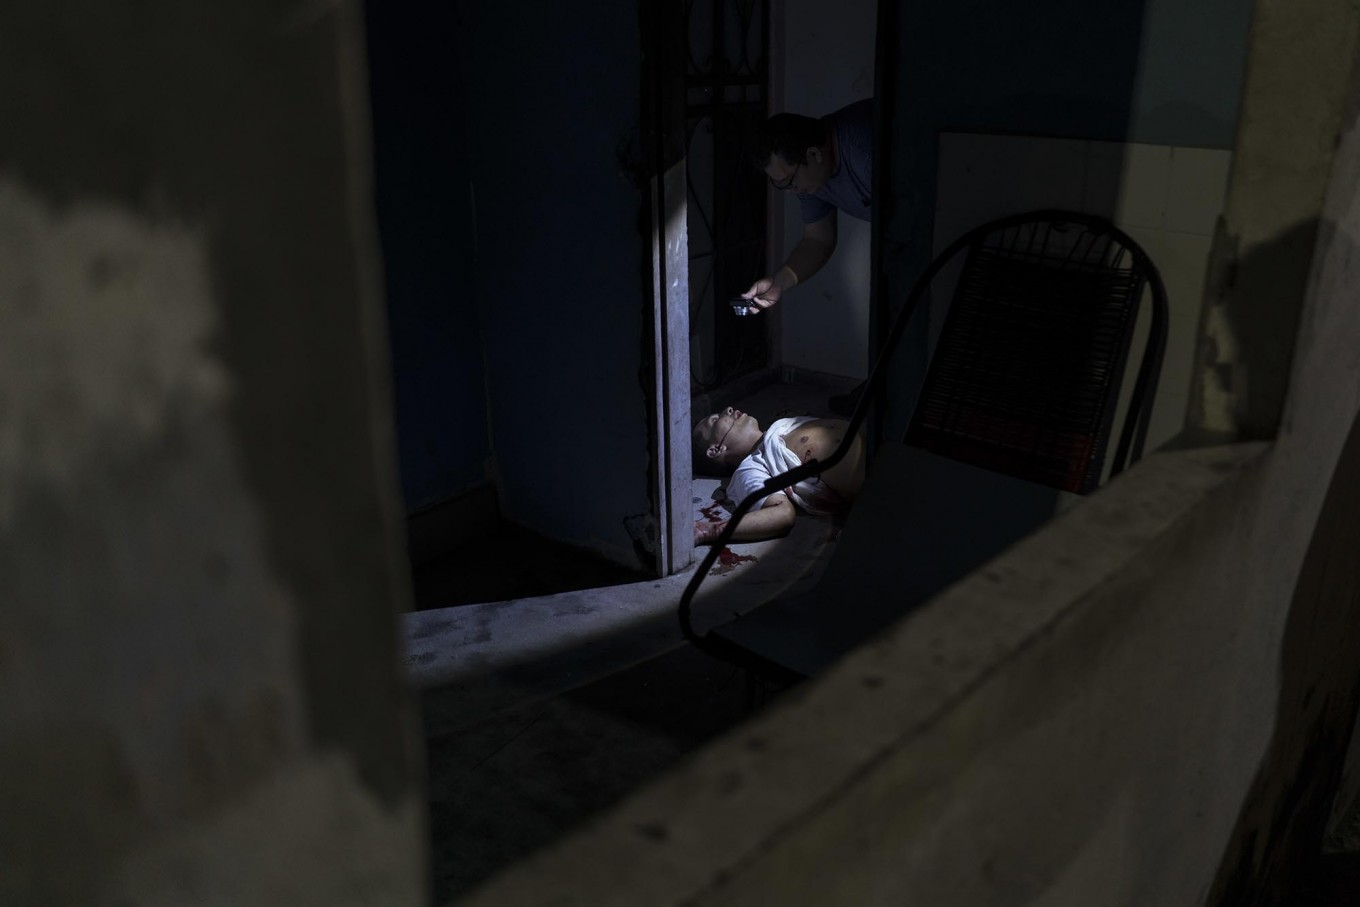 In this Feb. 5, 2017 photo, police inspect a murder victim on the floor of a home in Manaus, Brazil. The increasingly violent city is a thoroughfare for drug trafficking across South America, where authorities suspect most murders are gang related. AP Photo/Felipe Dana